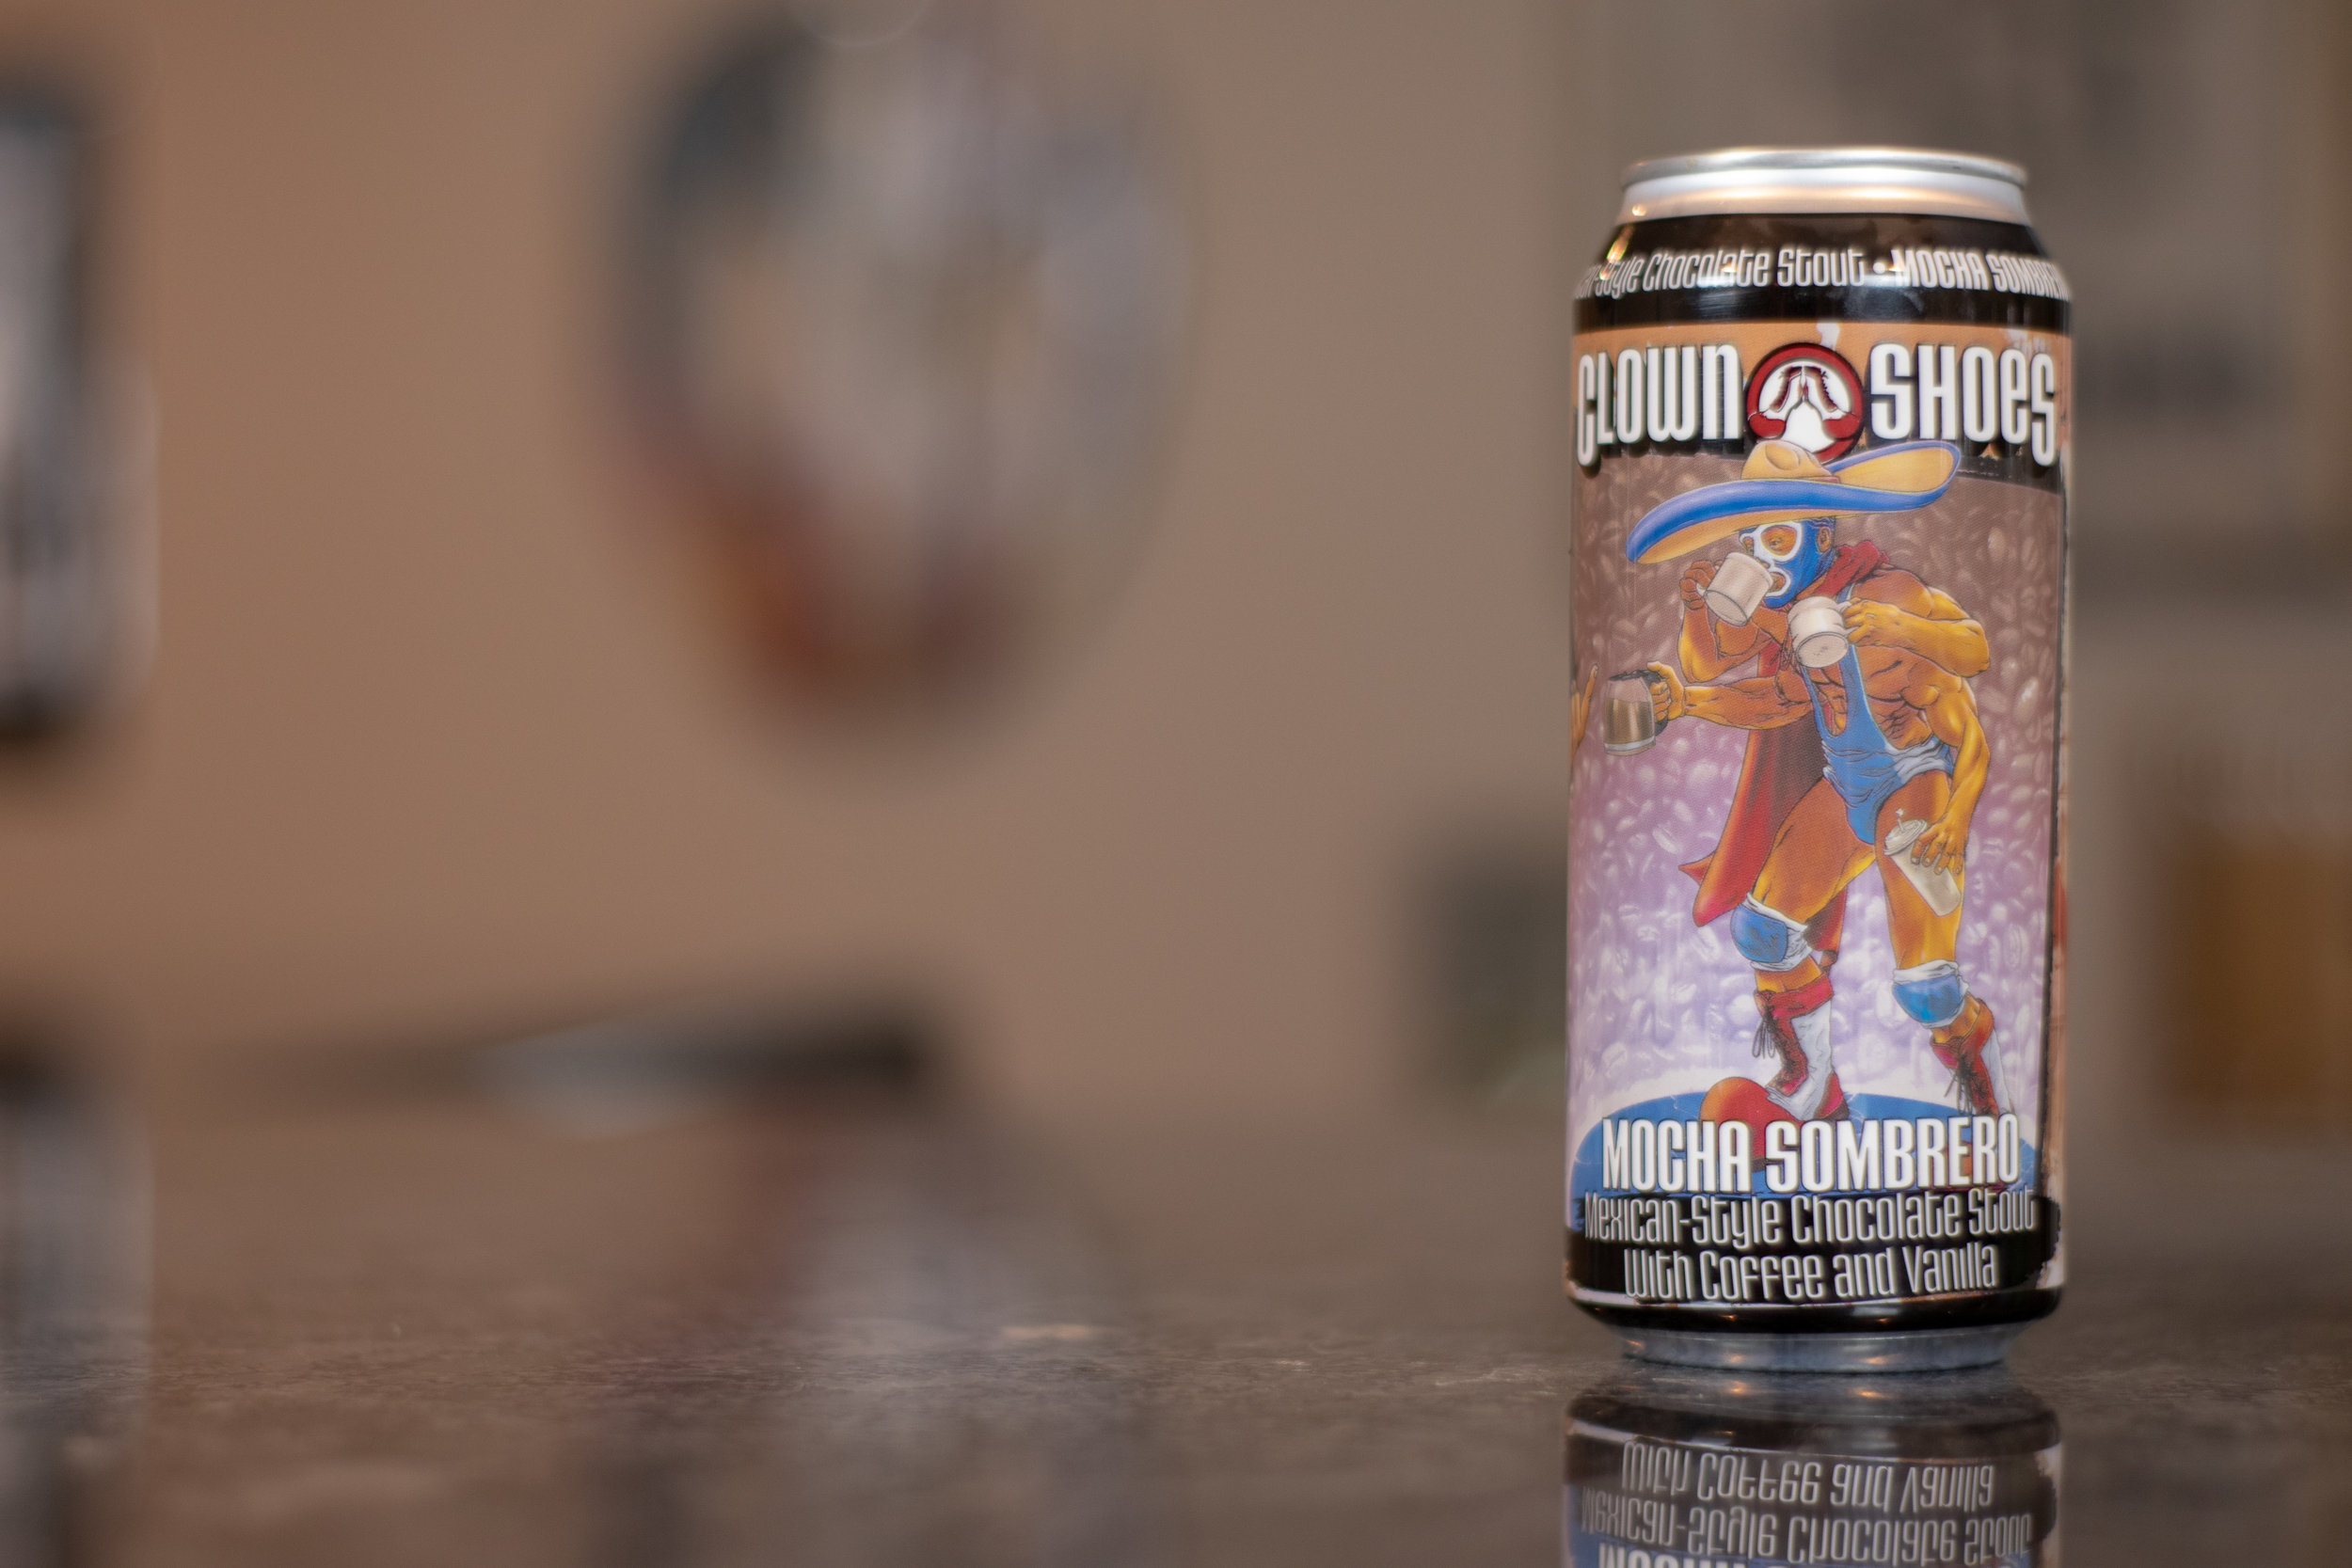 Mocha Sombrero 7% - Want to see the Video review? Click on the image.